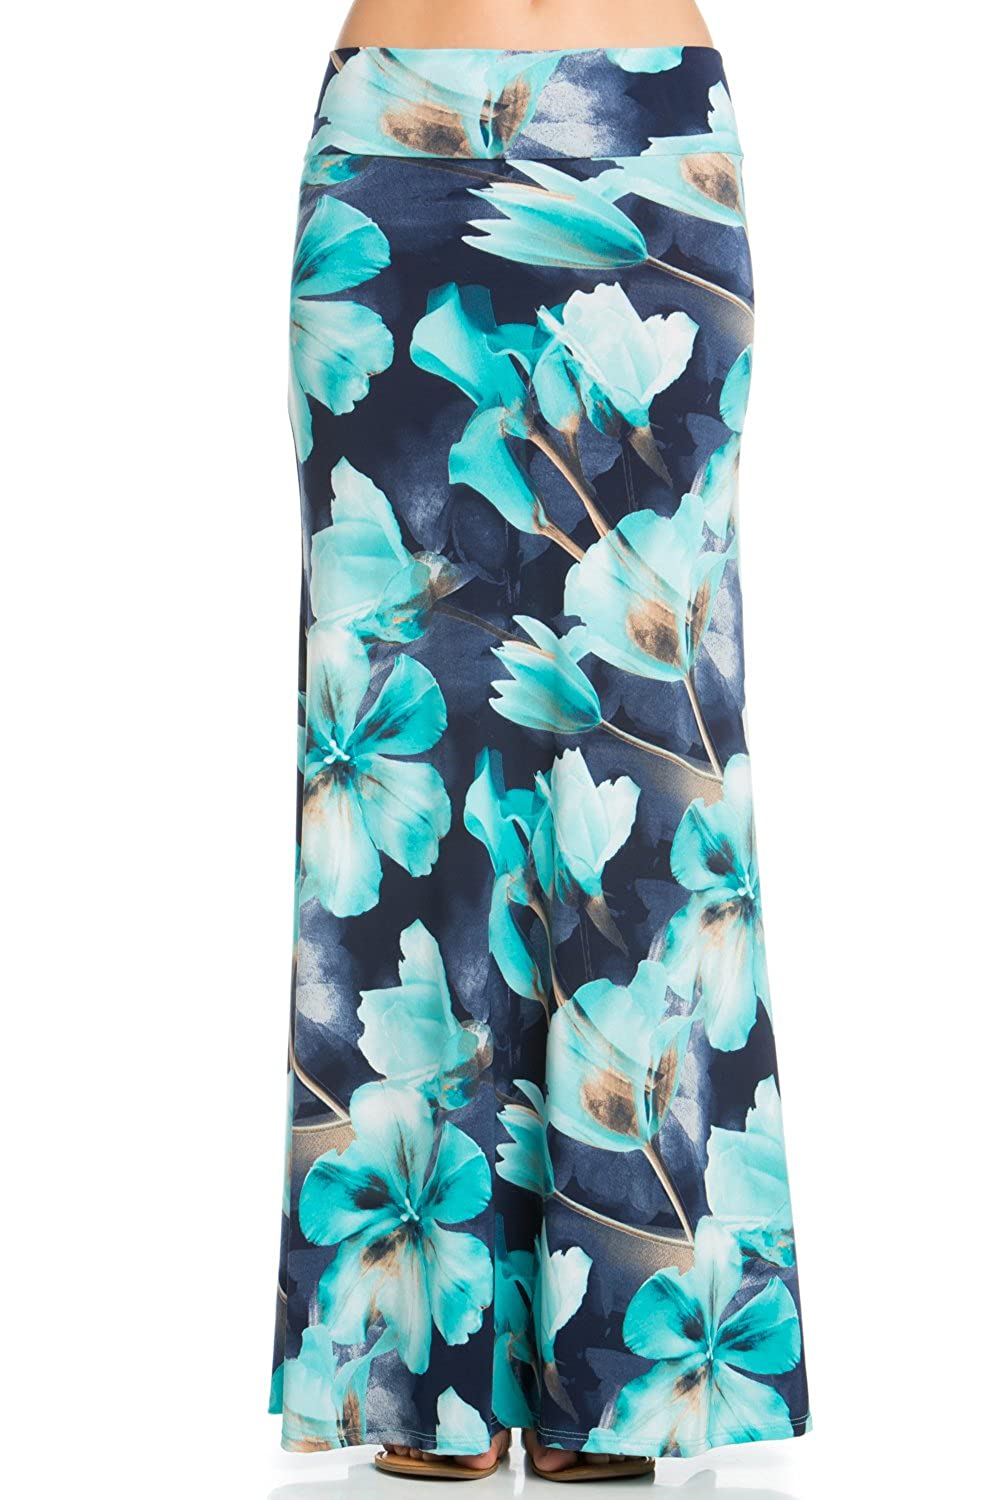 5Thread Foldover High Waisted Floor Length Maxi Skirt (XXX-LARGE, NAVY/AQUA FLOWER)